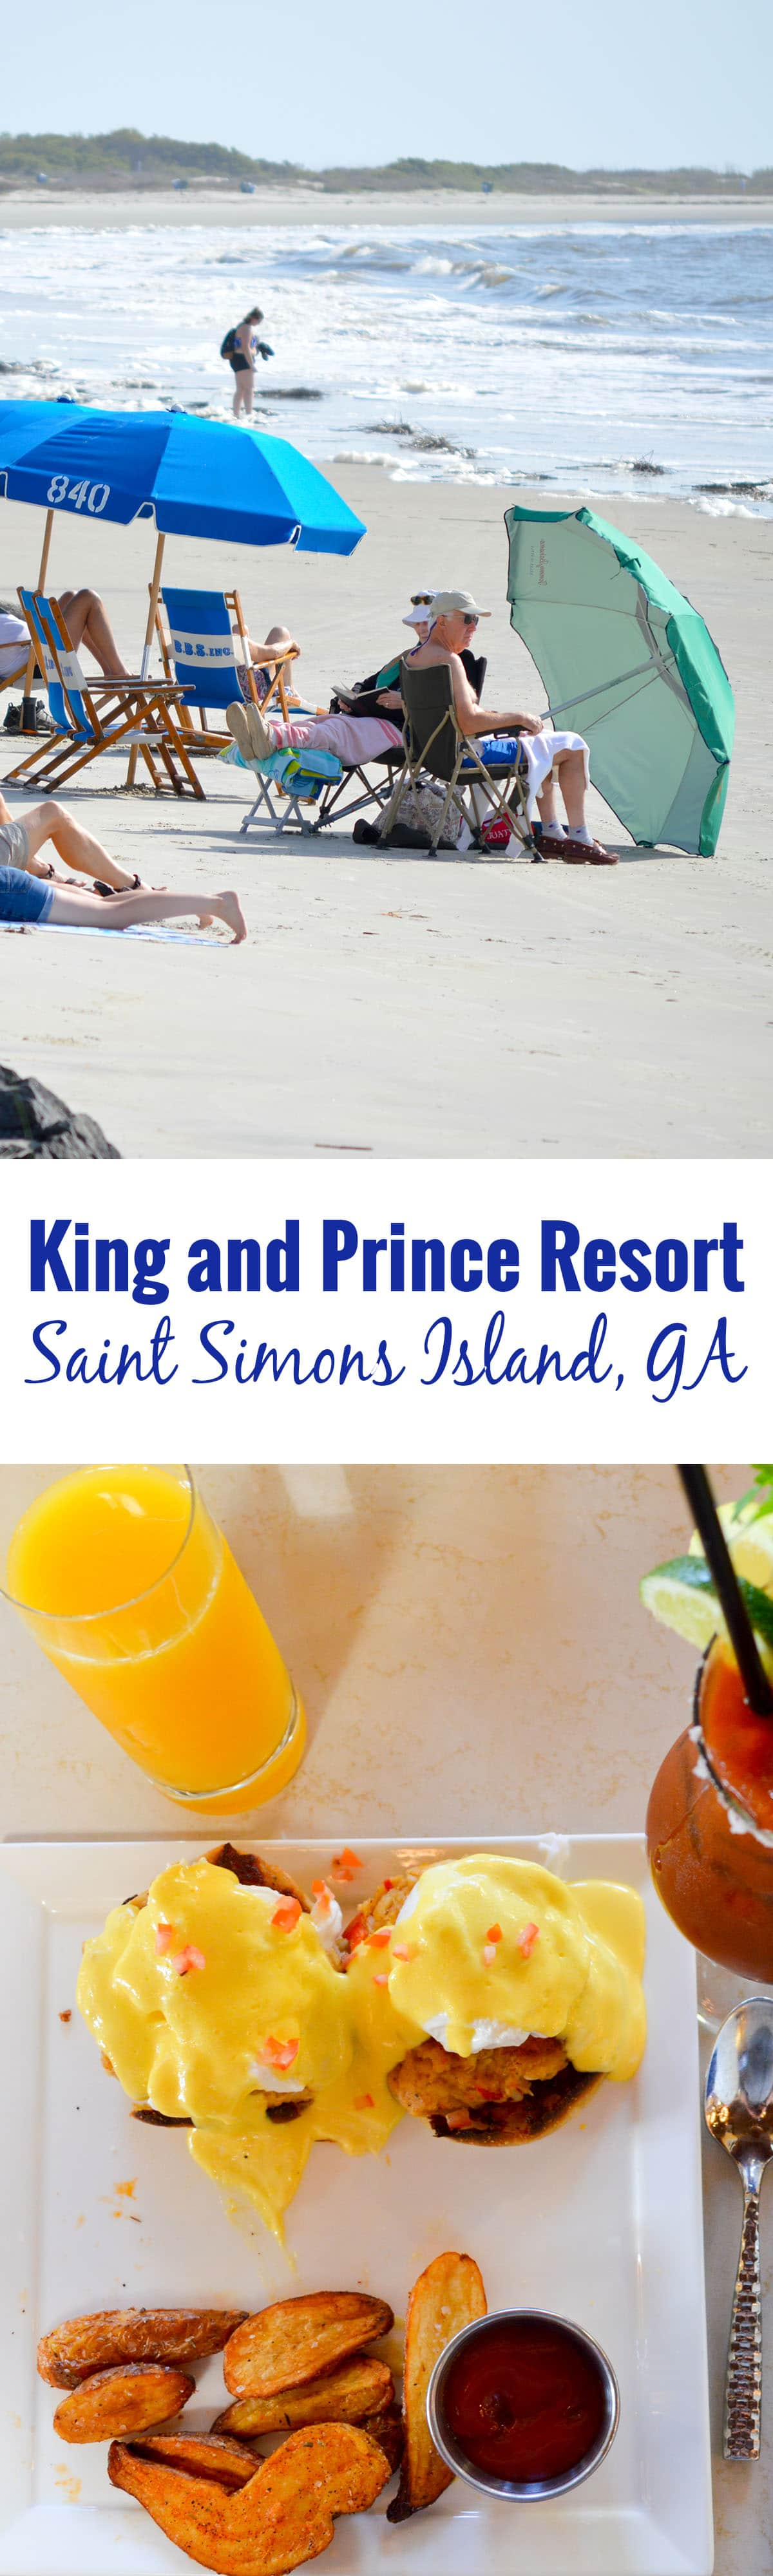 King and Prince Resort on Saint Simons Island. The resort stays true to its southern island roots and combines the best of a beach resort with the traditions and hospitality of southern living.